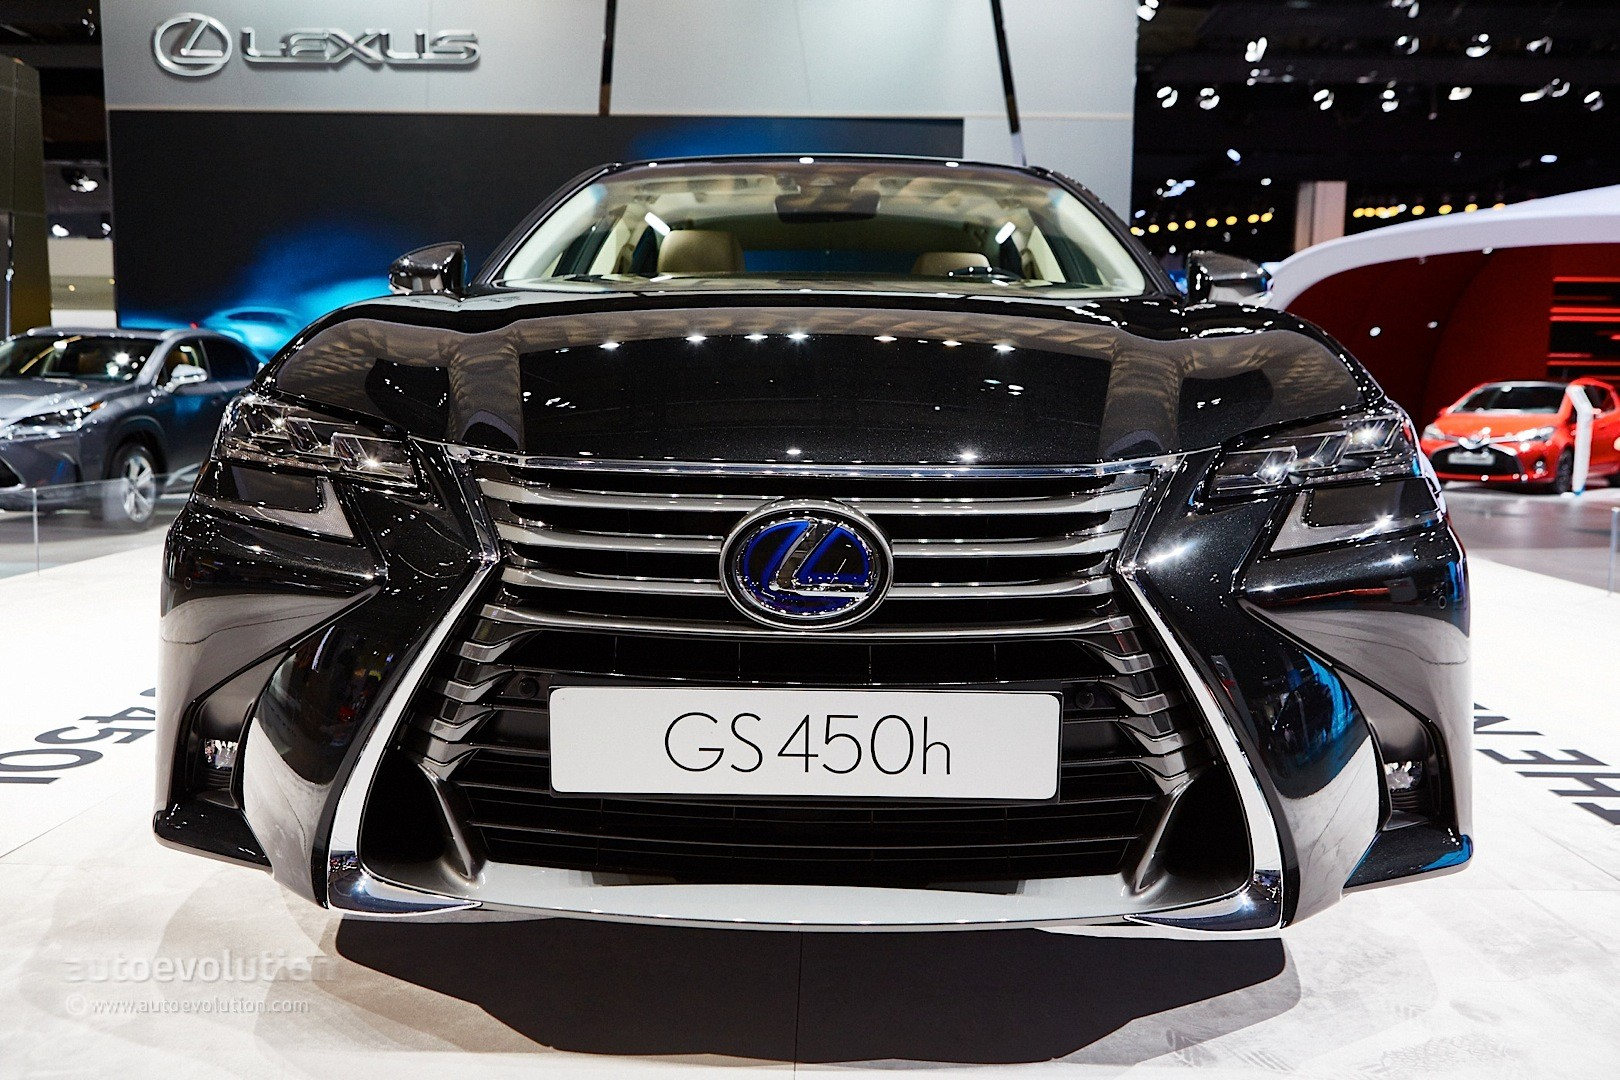 Hybrid Car Lineup Wallpaper 2018 2016 Lexus Gs 450h Facelift Debuts With Spindle Grille 2 0